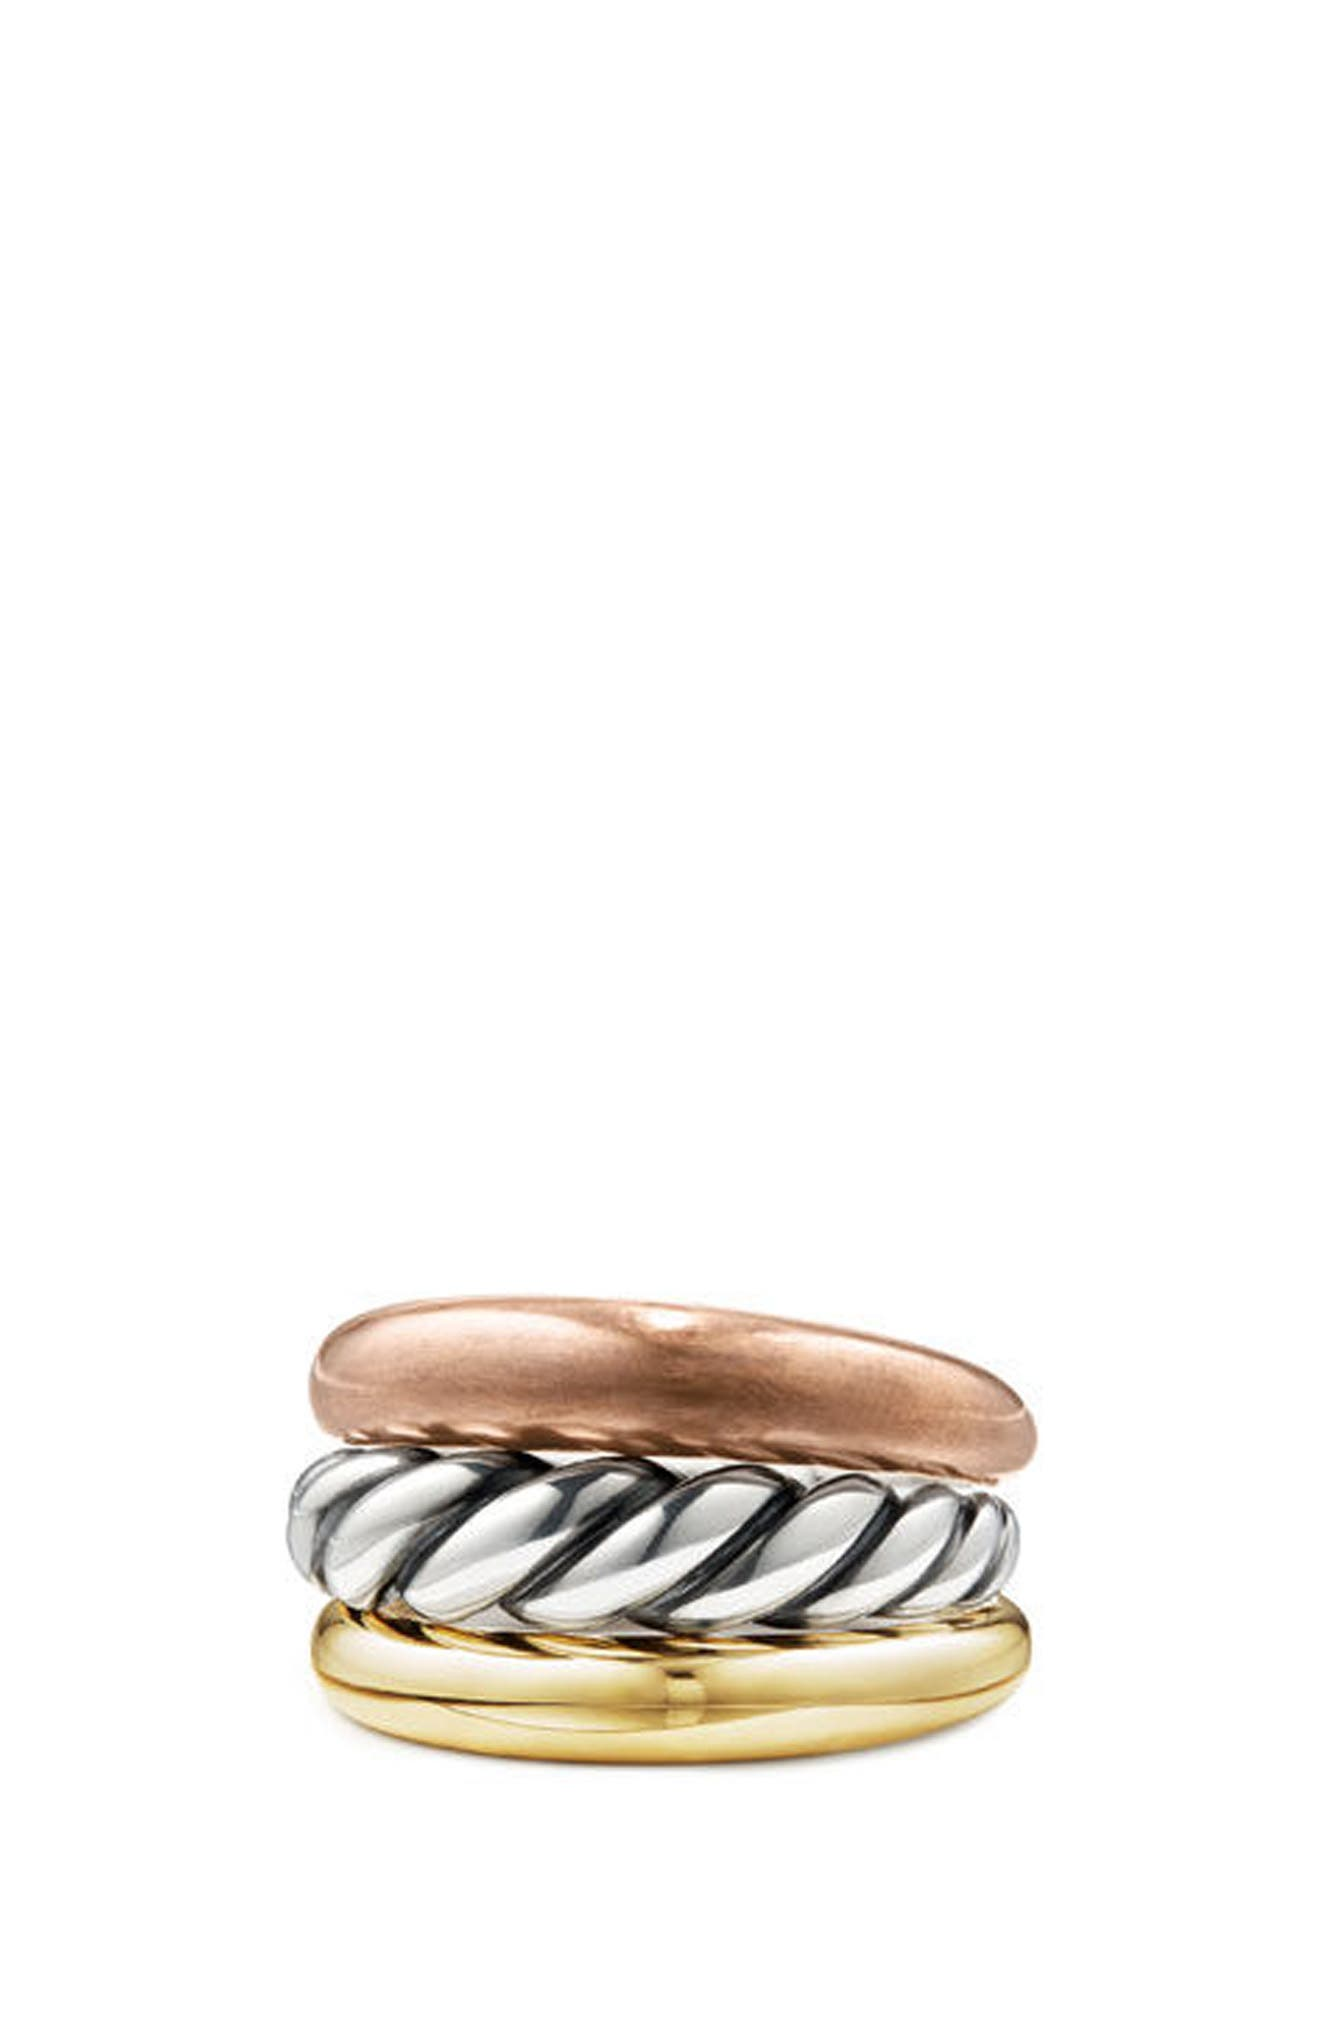 Main Image - David Yurman Pure Form Mixed Metal Three-Row Ring with Bronze, Silver & Brass